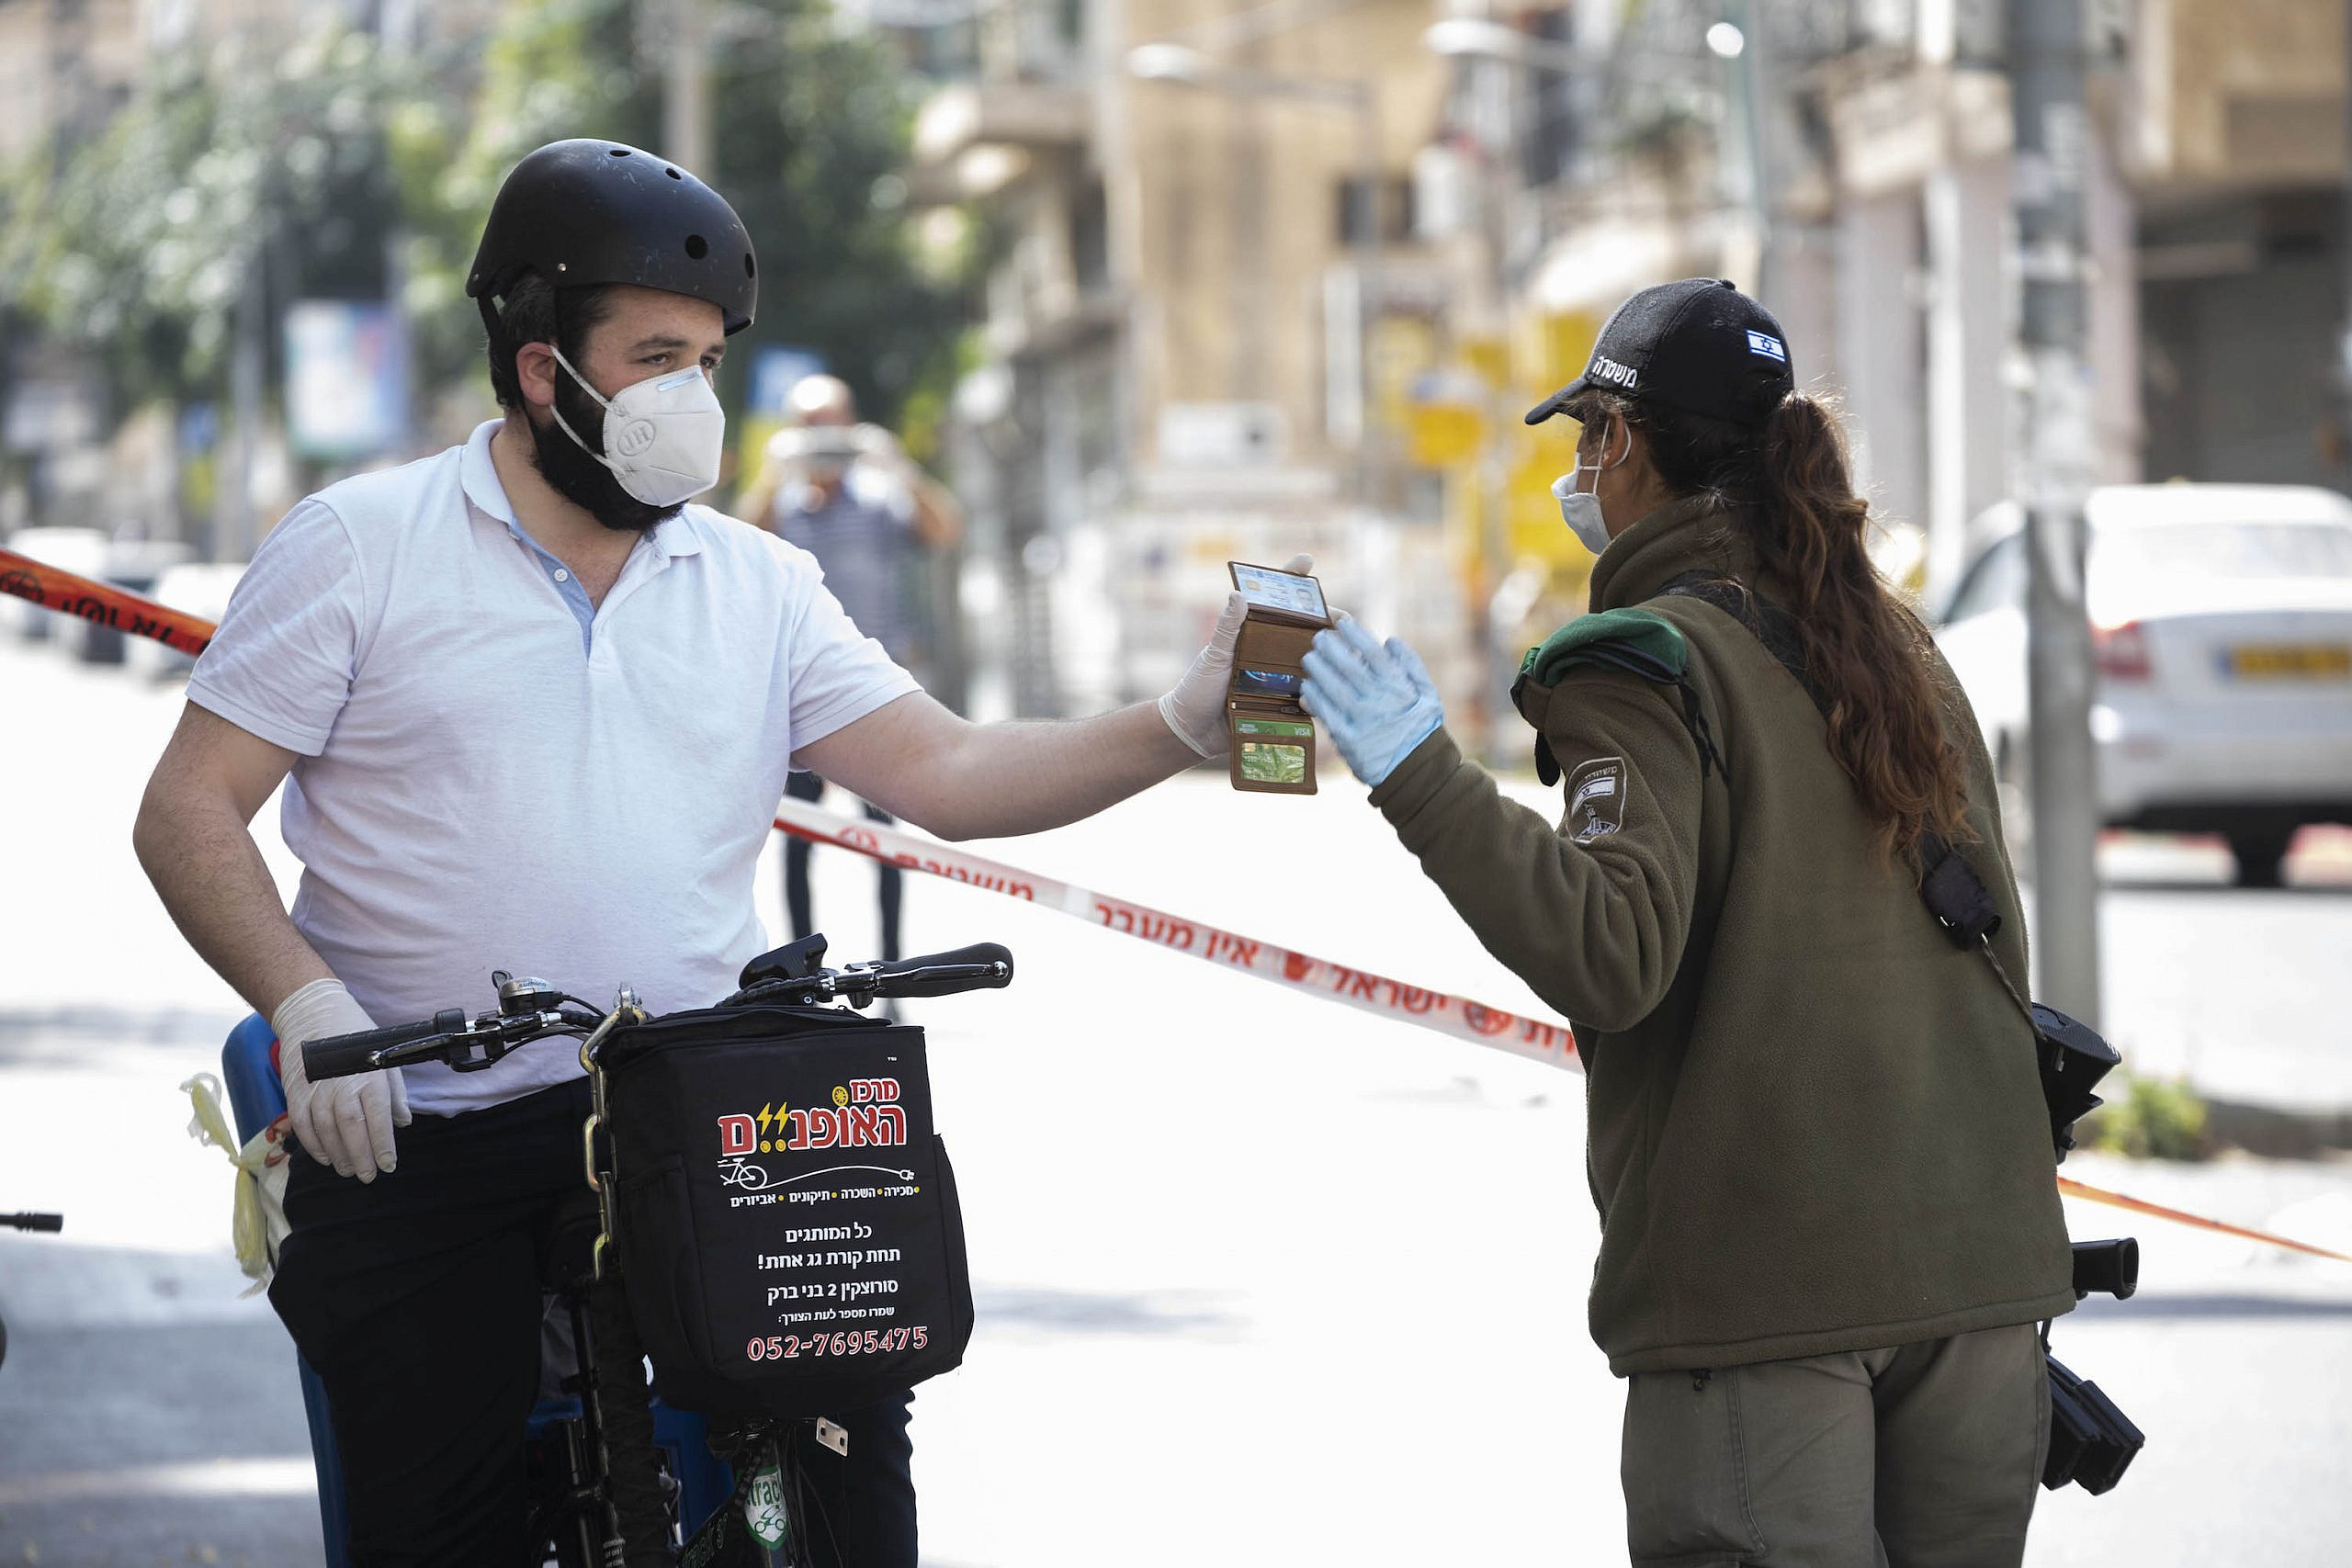 A Haredi man and an Israeli officer in Bnei Brak, during a city-wide closure due to the coronavirus, April 3, 2020. (Oren Ziv)